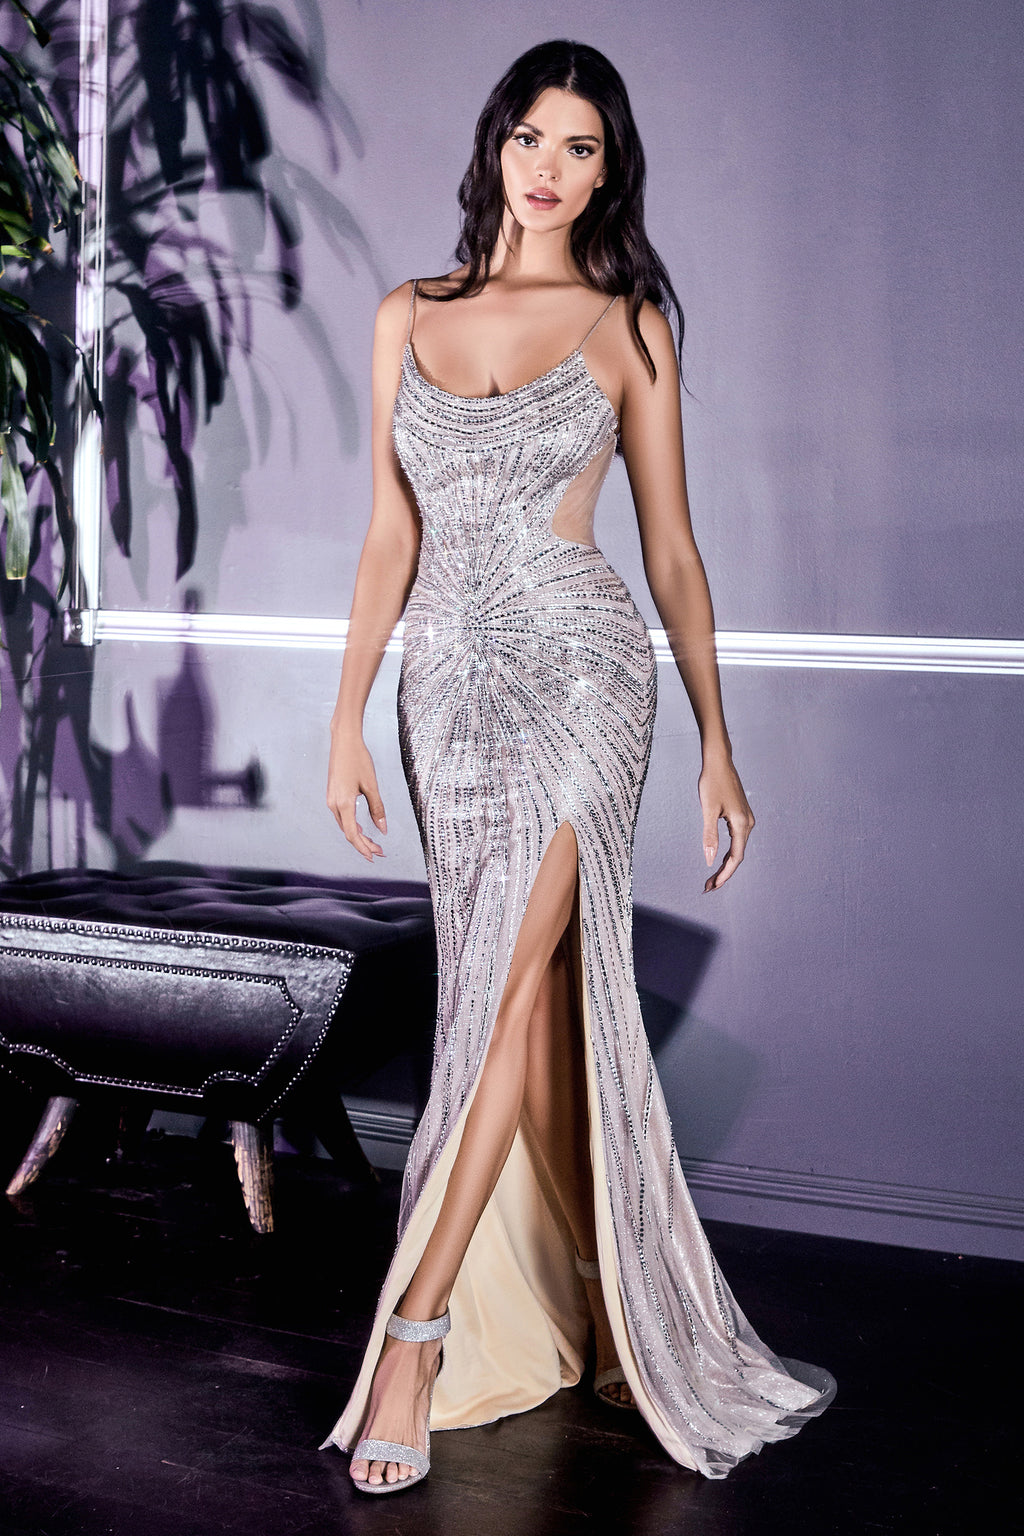 Elegant Swoop Neckline Gown with Glitter Detailing and Leg Slit #CDCR859